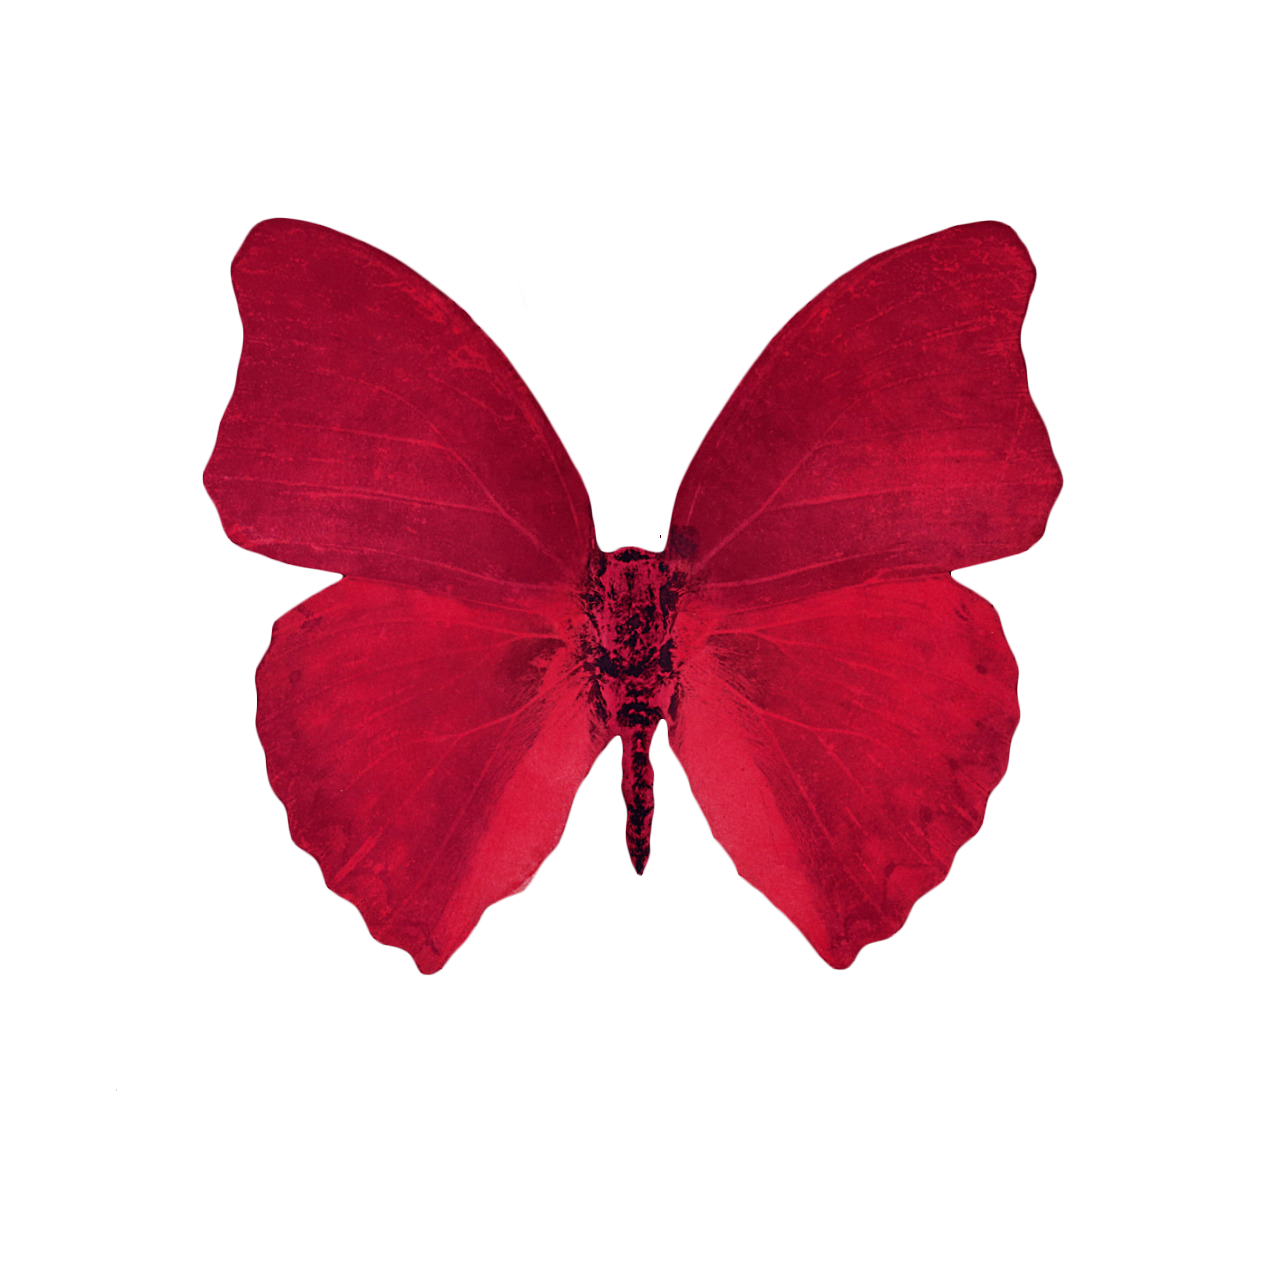 Red aesthetic png. Transparent source floserber sourcefloserber